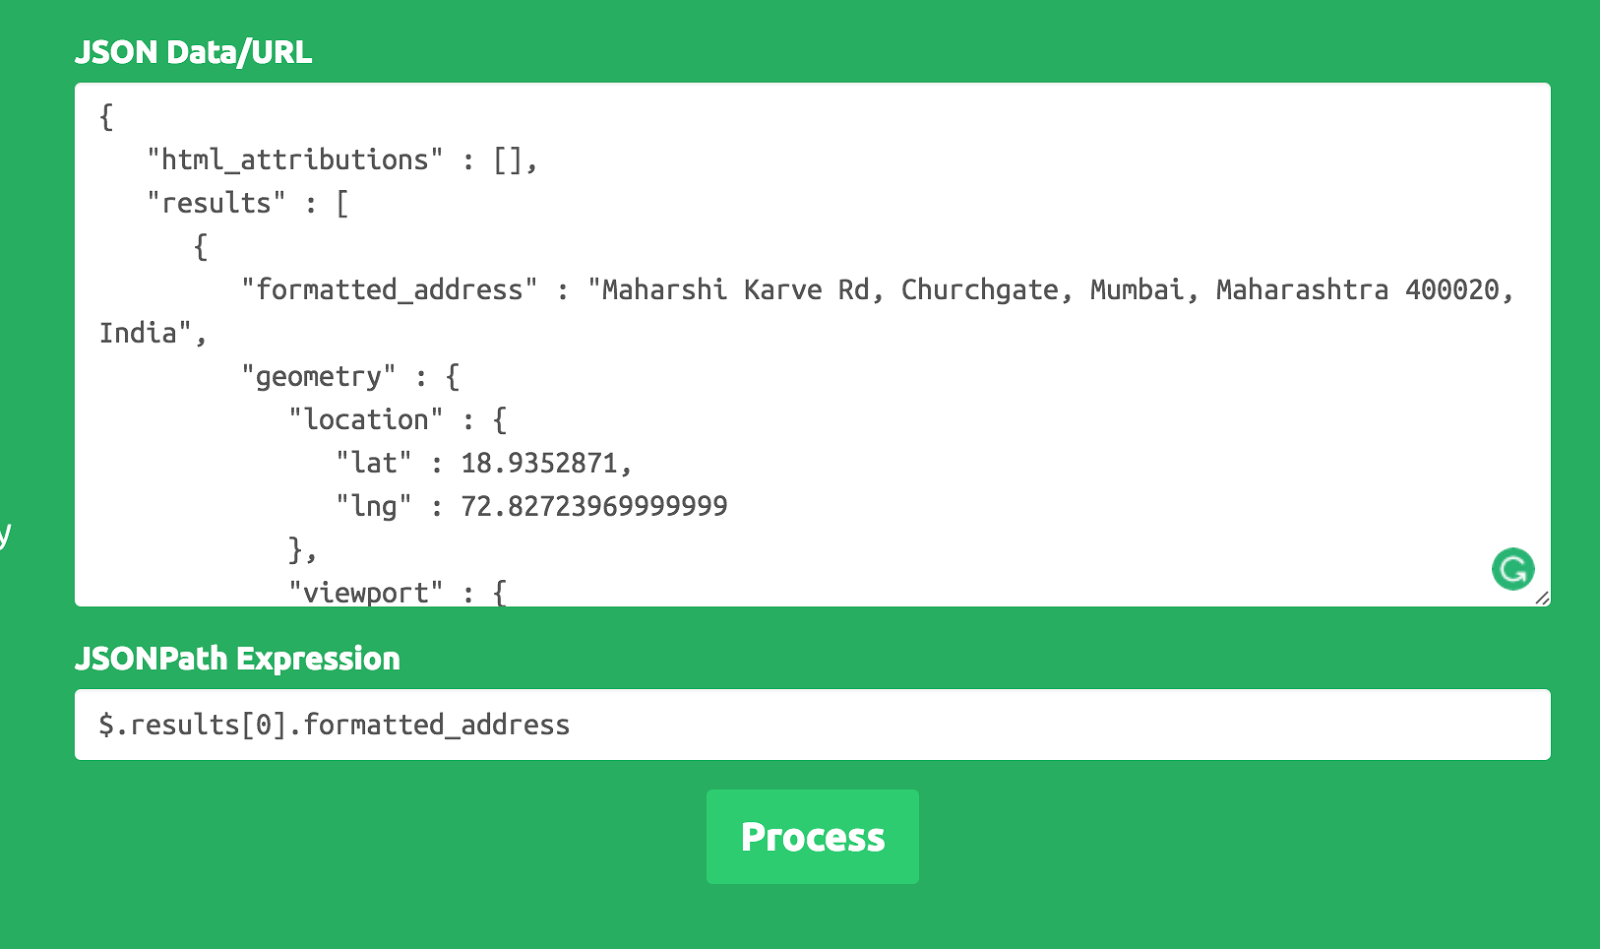 Automate Testing of Rest API using Rest Assured: Extracting